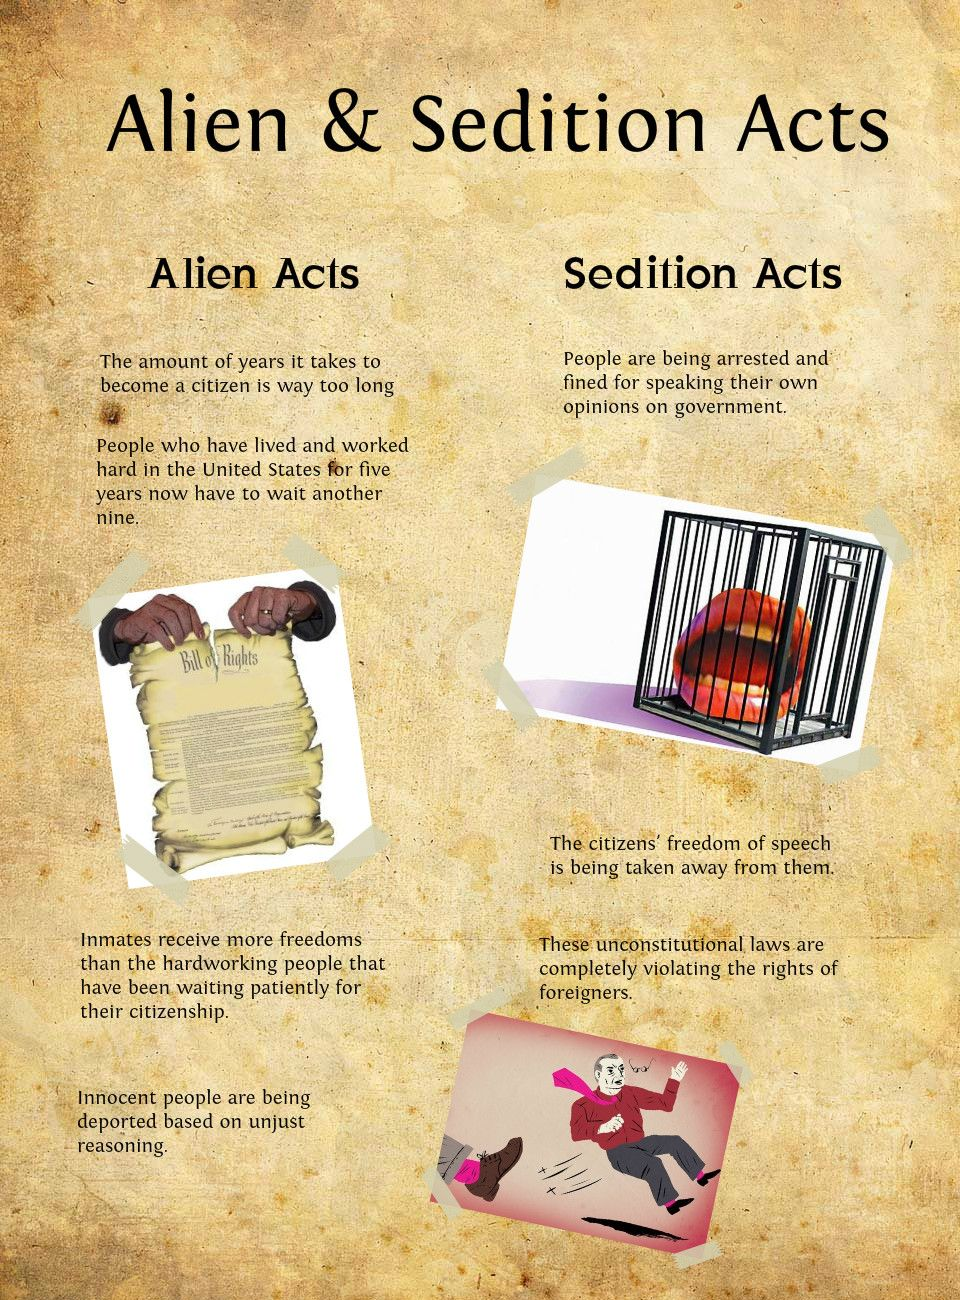 an overview of the alien and sedition acts of 1798 The alien and sedition acts naturalization act: june 18, 1798 alien friends act: june 25, 1798 alien enemy act: july 6, 1798 sedition  jack miller center 3 bala.